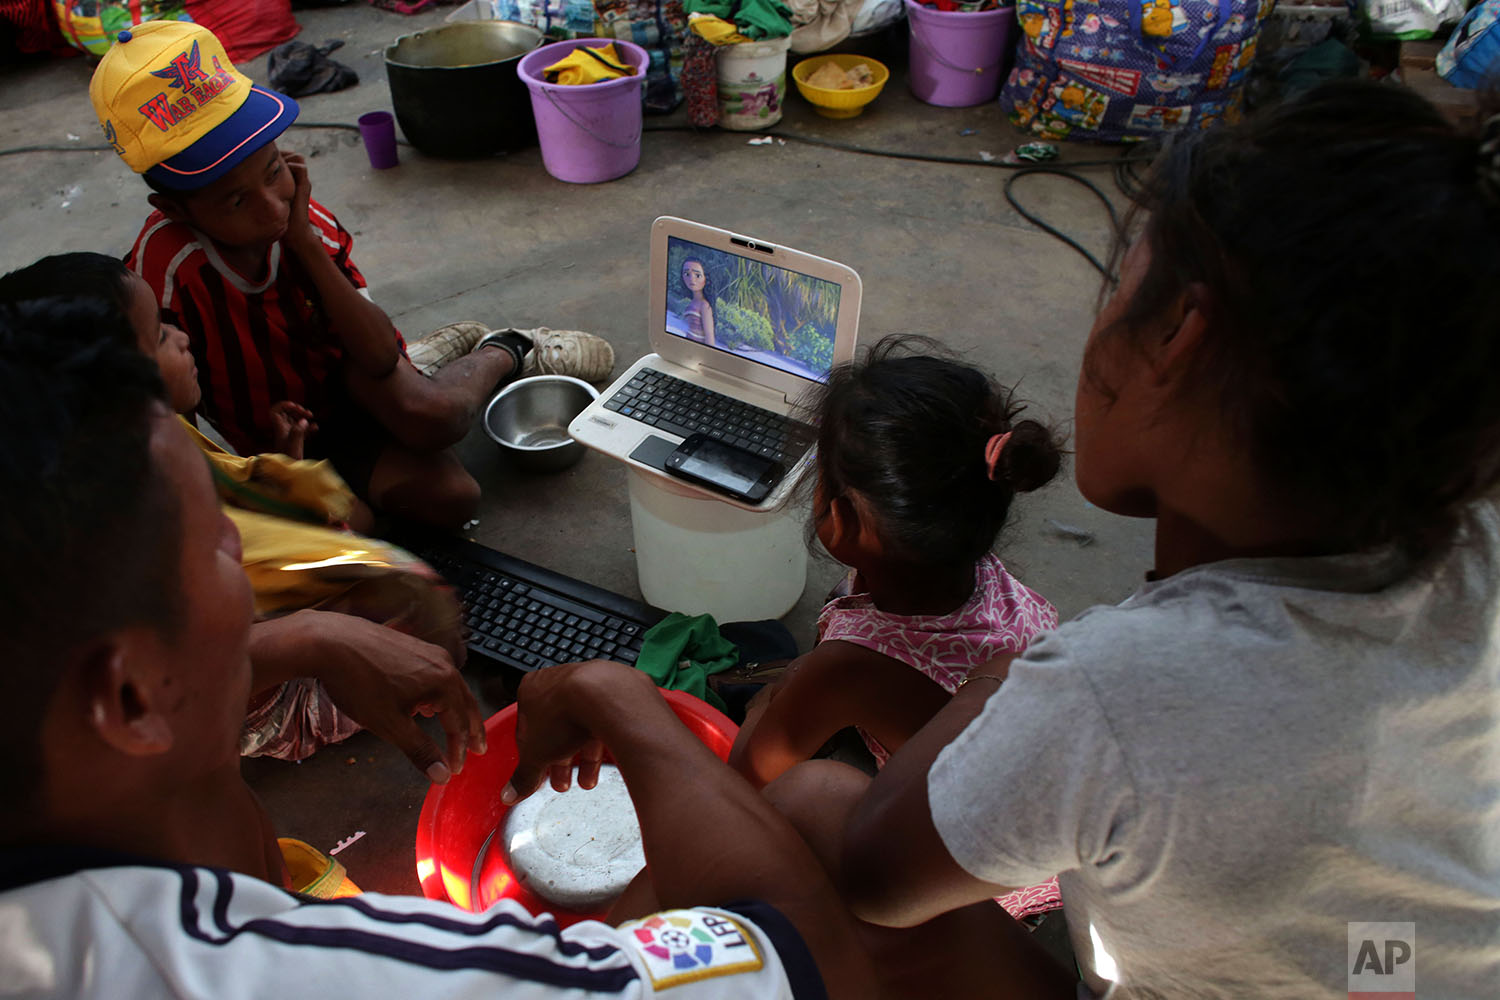 In this March 10, 2018 photo, Warao children from Venezuela watch cartoons on a computer laptop in a shelter, in Pacaraima, Brazil. (AP Photo/Eraldo Peres)